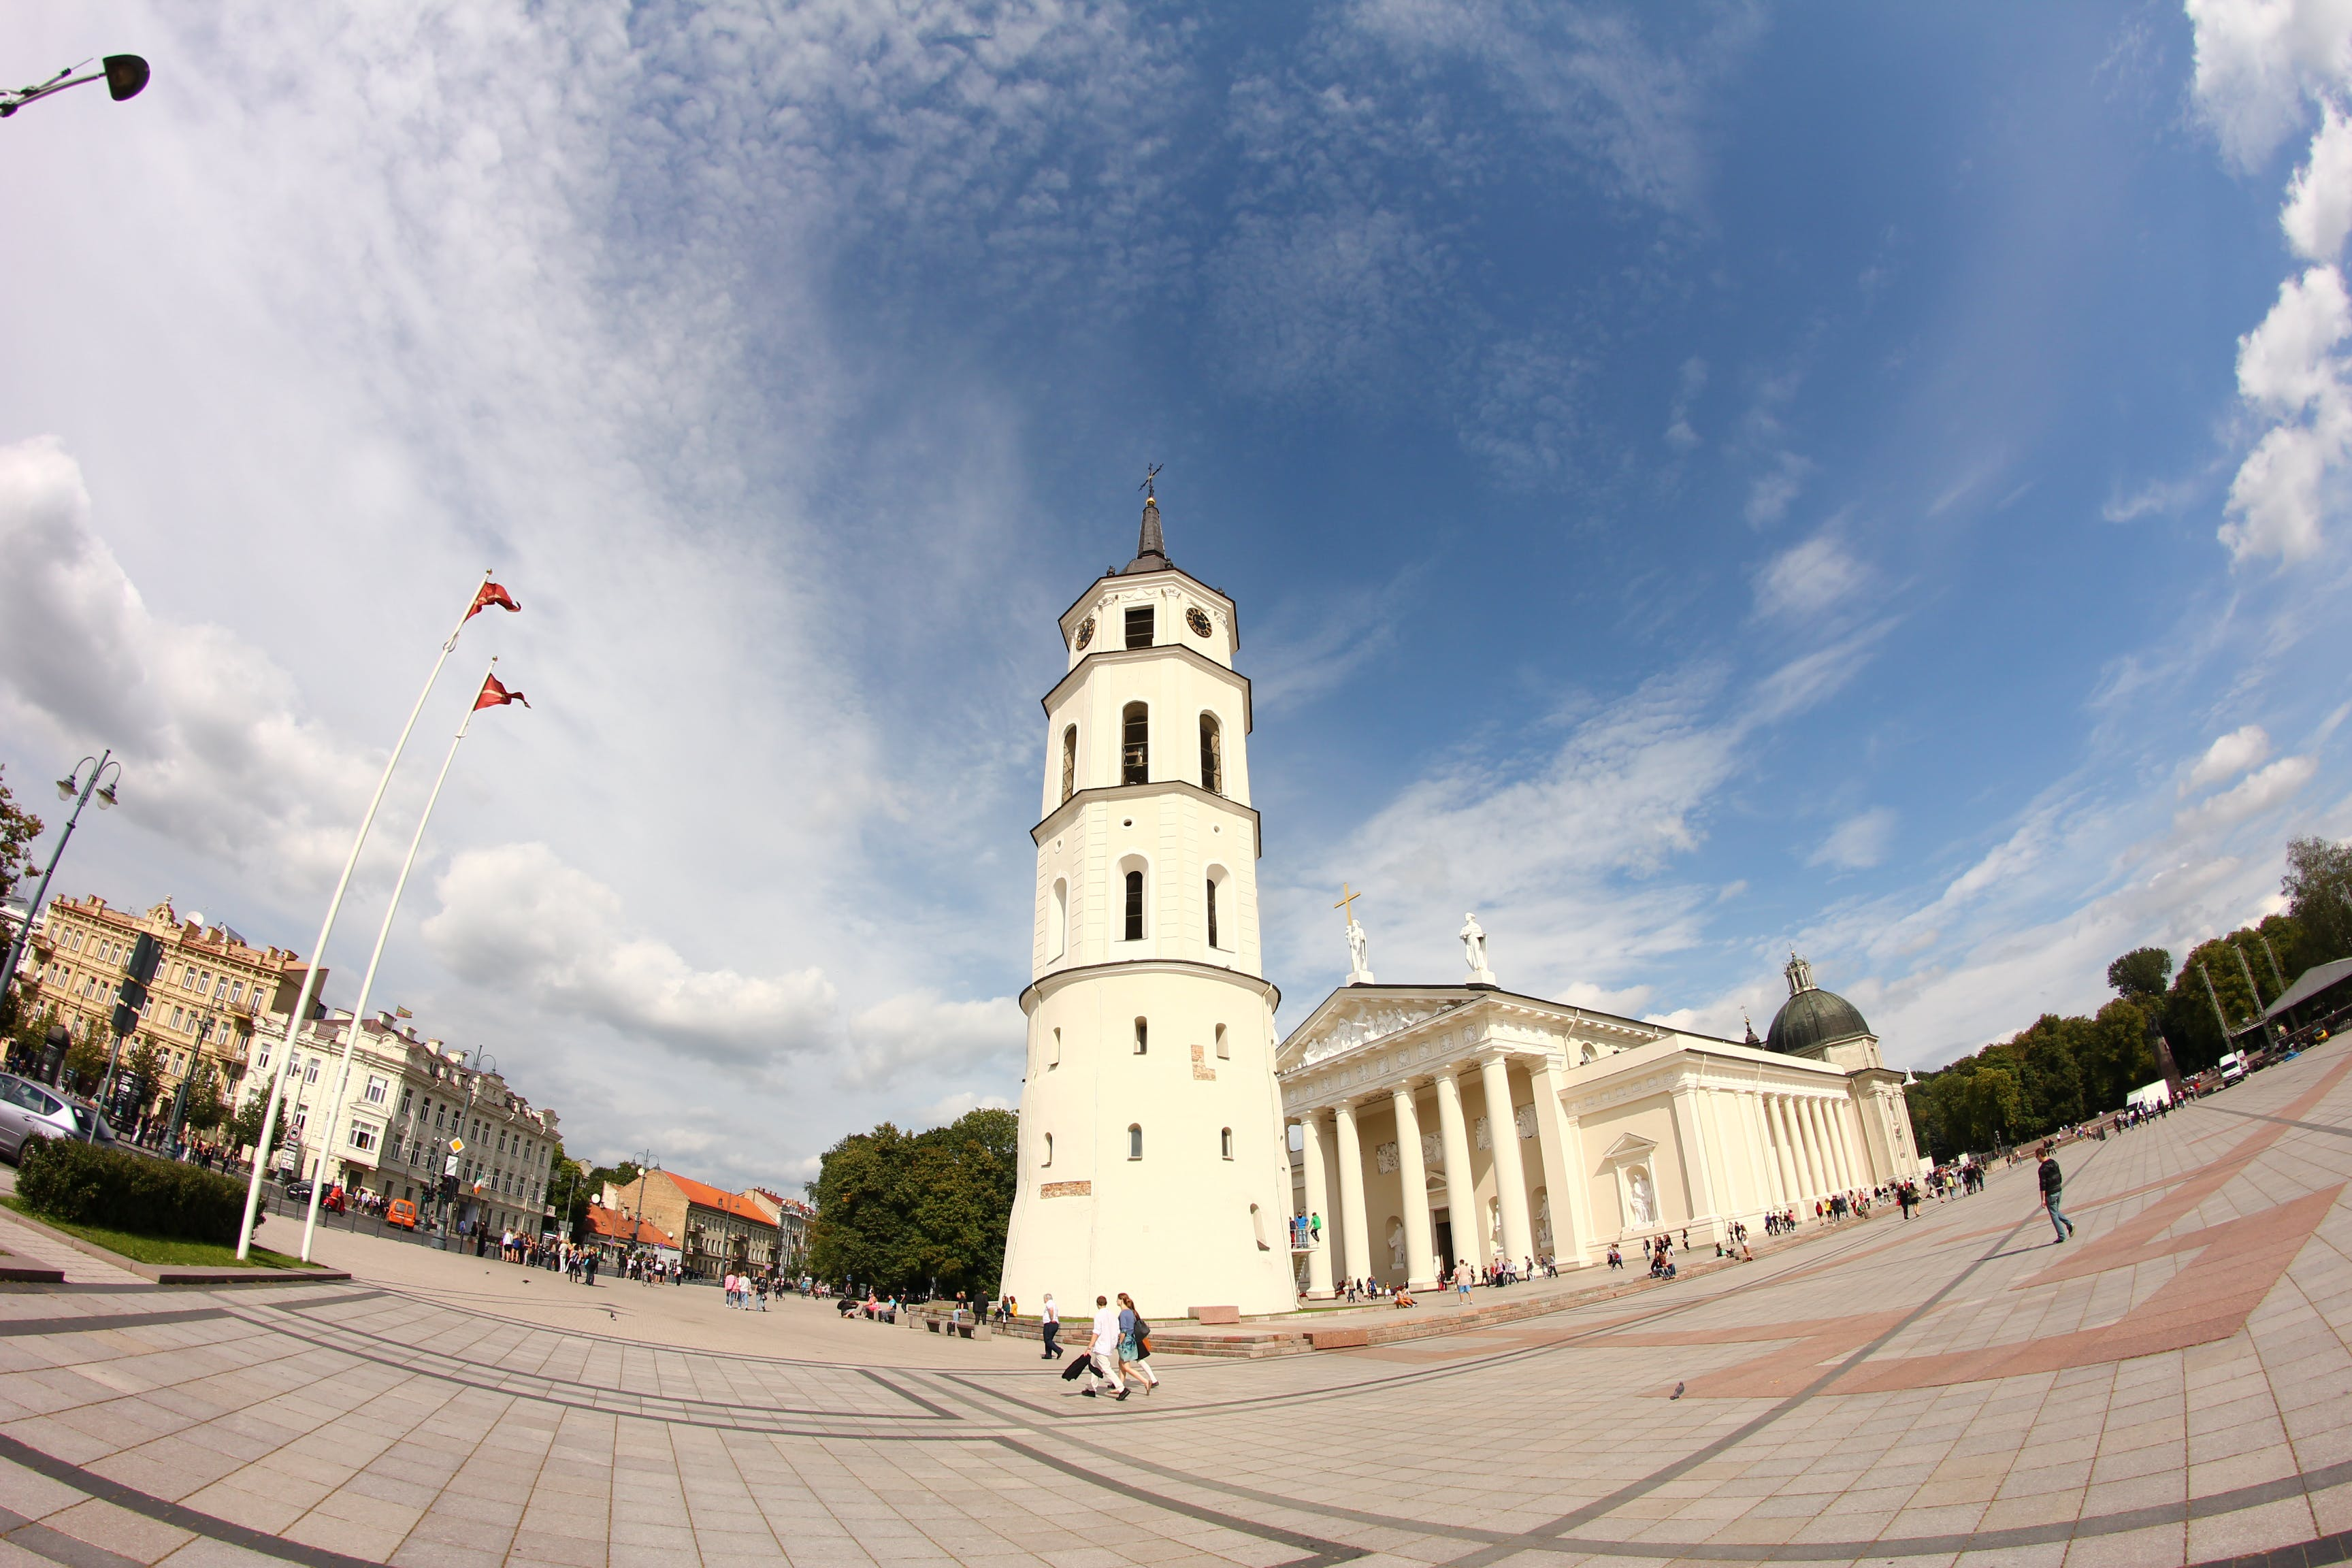 Free stock photo of Vilnius CATHEDRAL